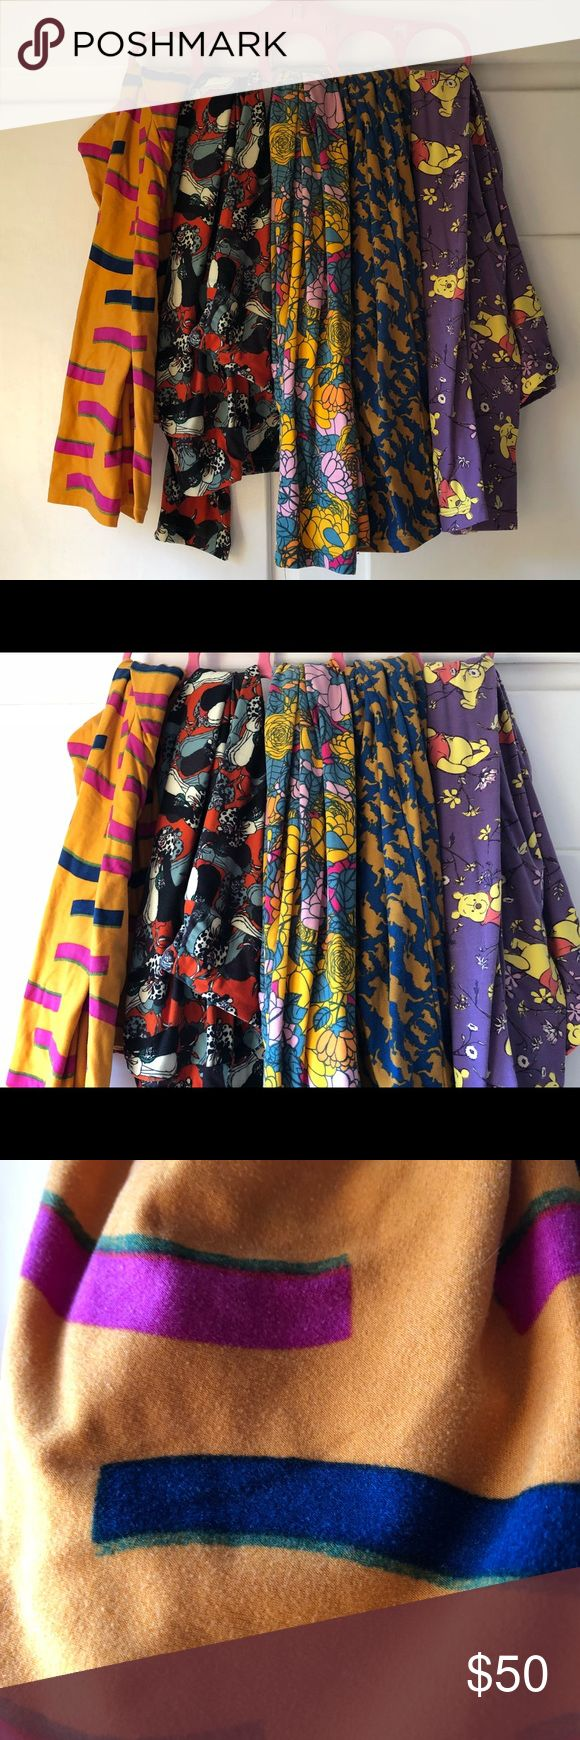 5 pair LuLaRoe leggings size TC 5 pairs of LLR leggings in TC! Great deal for many many comfy leggings. These are so soft and multiple cute patterns including cruella deville and Winnie the Pooh! These have all been worn and cleaned according to LLR guidelines. If you don't want all five pair let me know and I'll make a listing for each individual pair at $12 each!  Make an offer or put in a bundle to save 😀 LuLaRoe Pants Leggings